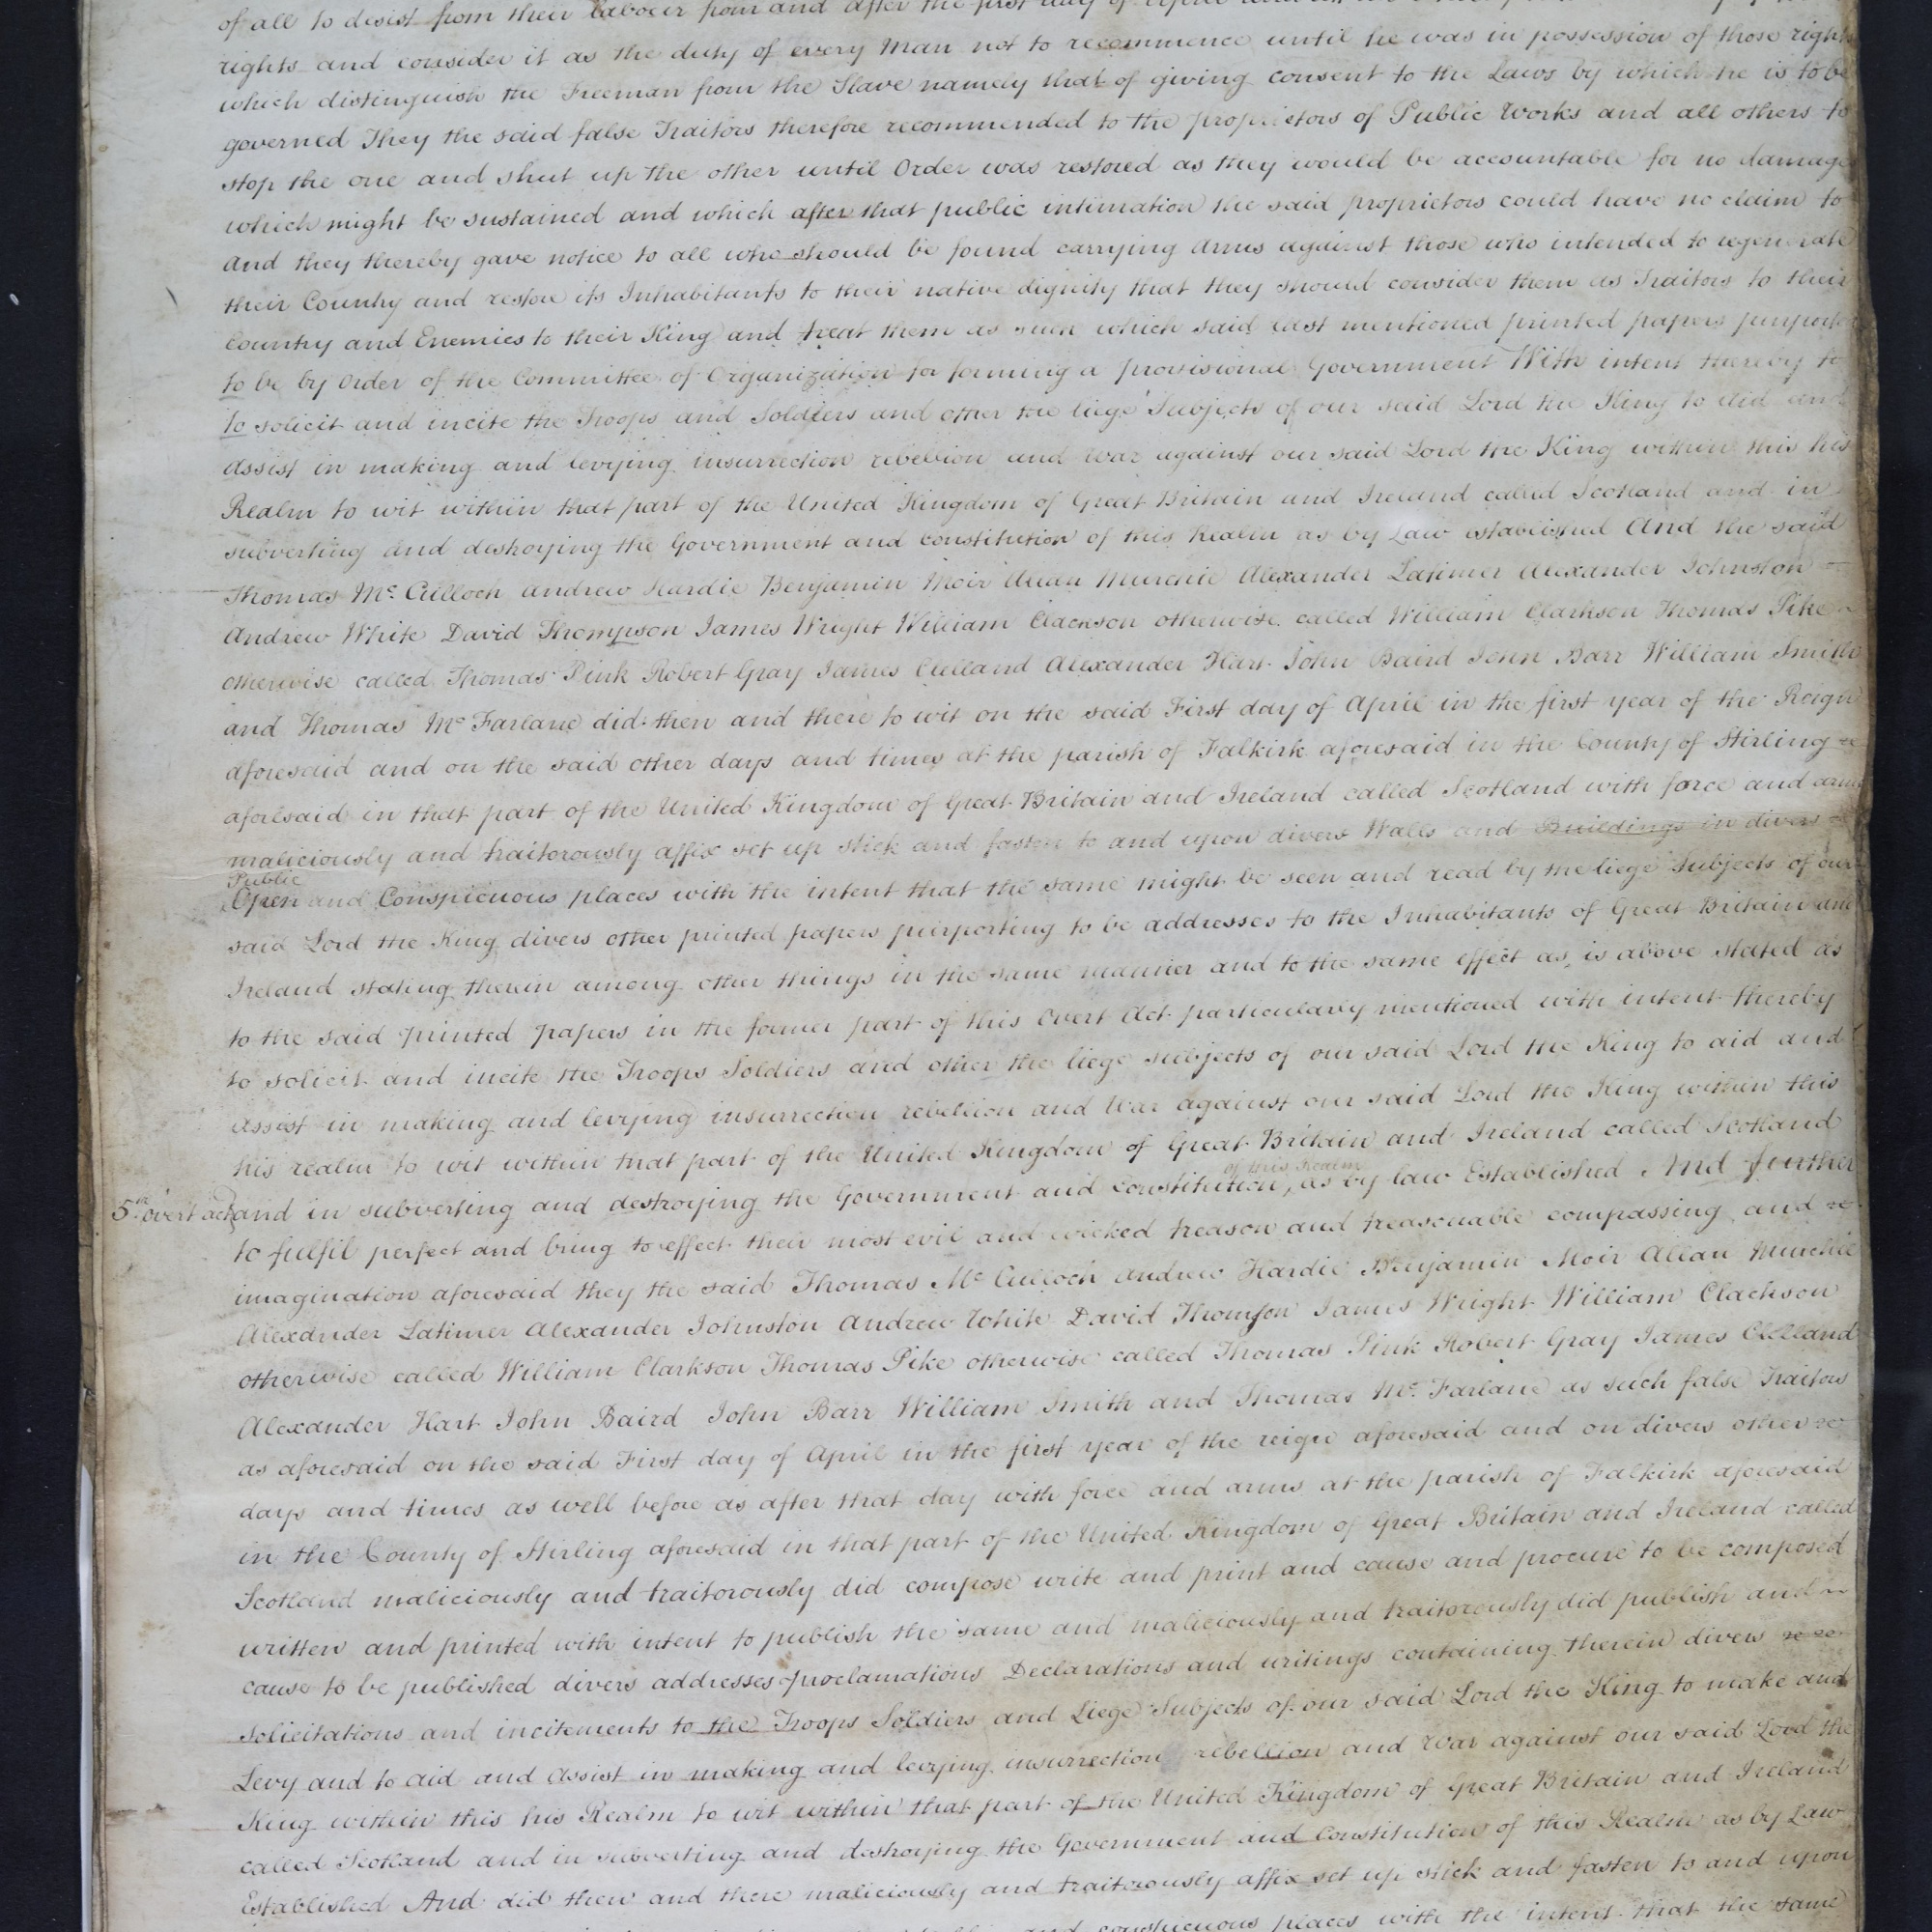 Treason trials for the County of Stirling, the Bonnymuir case. True bills brought against 18 men. National Records of Scotland, Crown copyright, JC21/2/1 p3